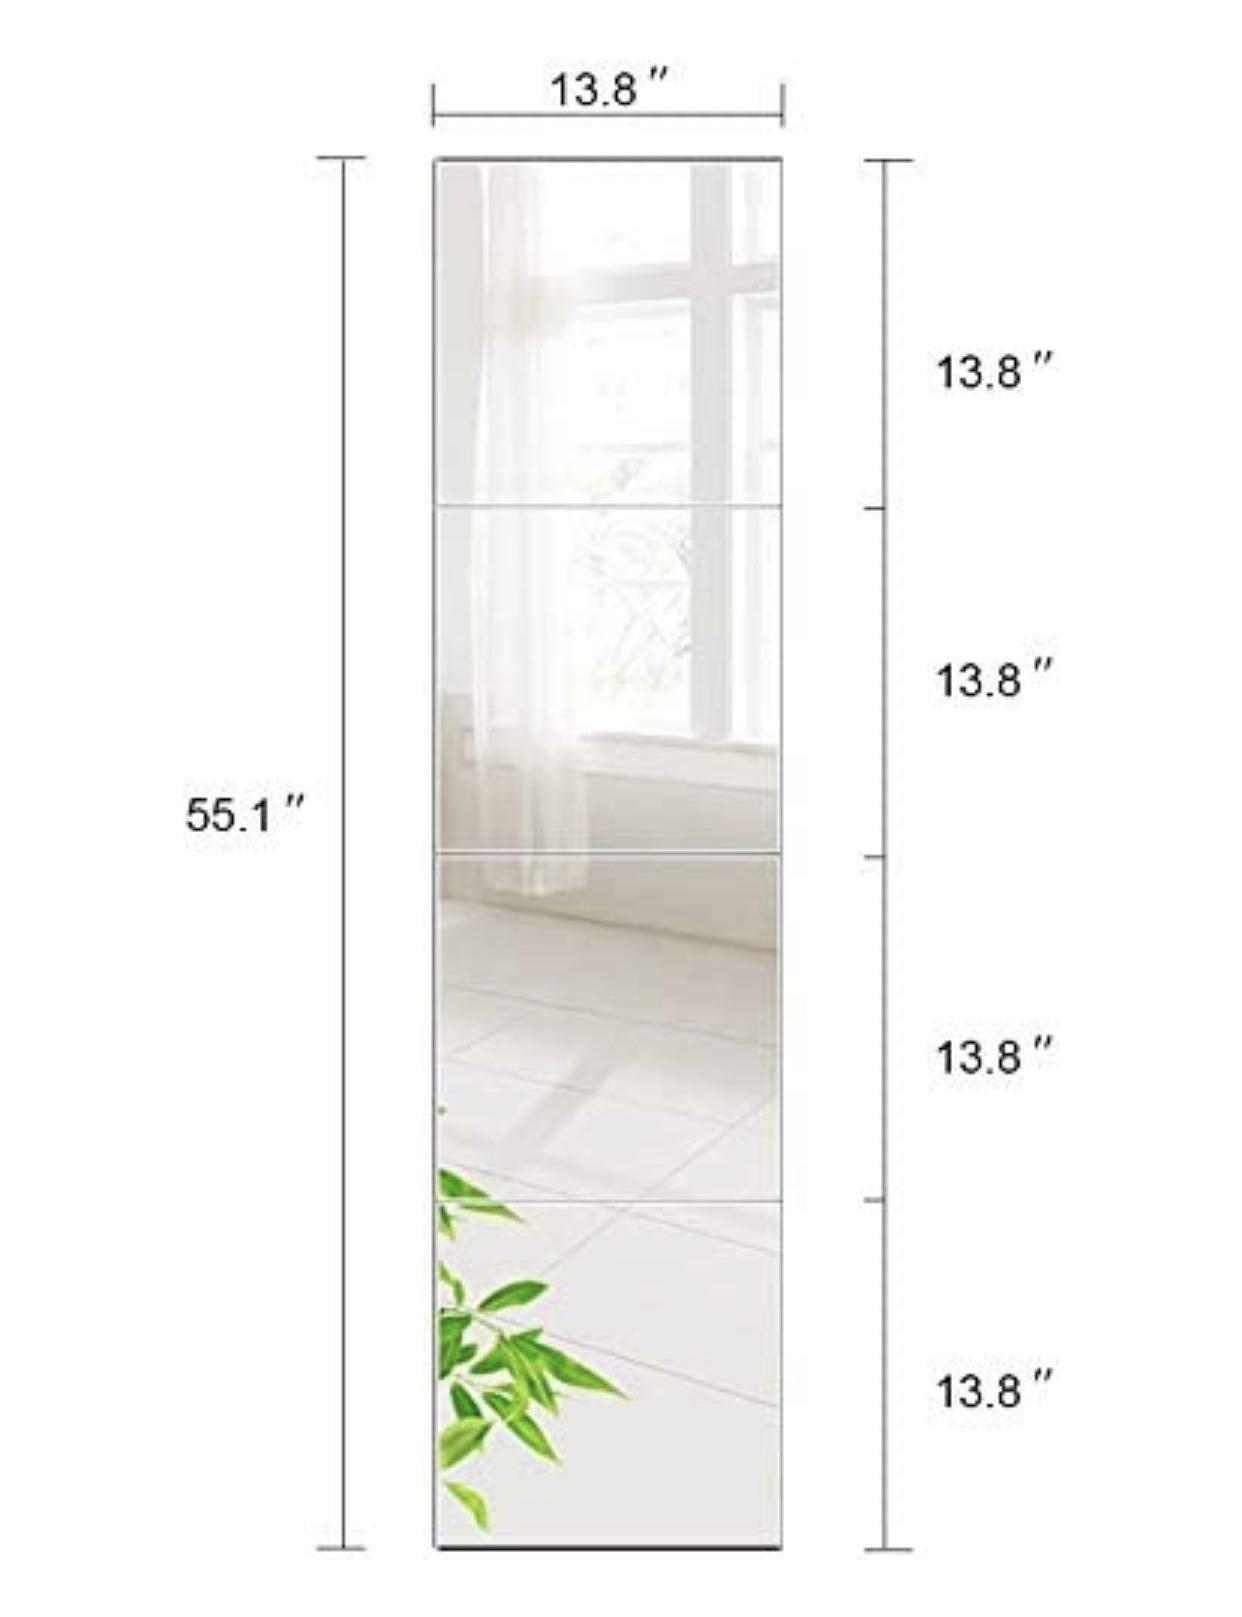 Beauty4u Tall Gym Mirror Tiles 14 X 4 Pieces Full Length Wall Mirror Set Frameless Hd Image Vanity Mirror For Living Room Bedroom Home Decor Furniture Others On Carousell